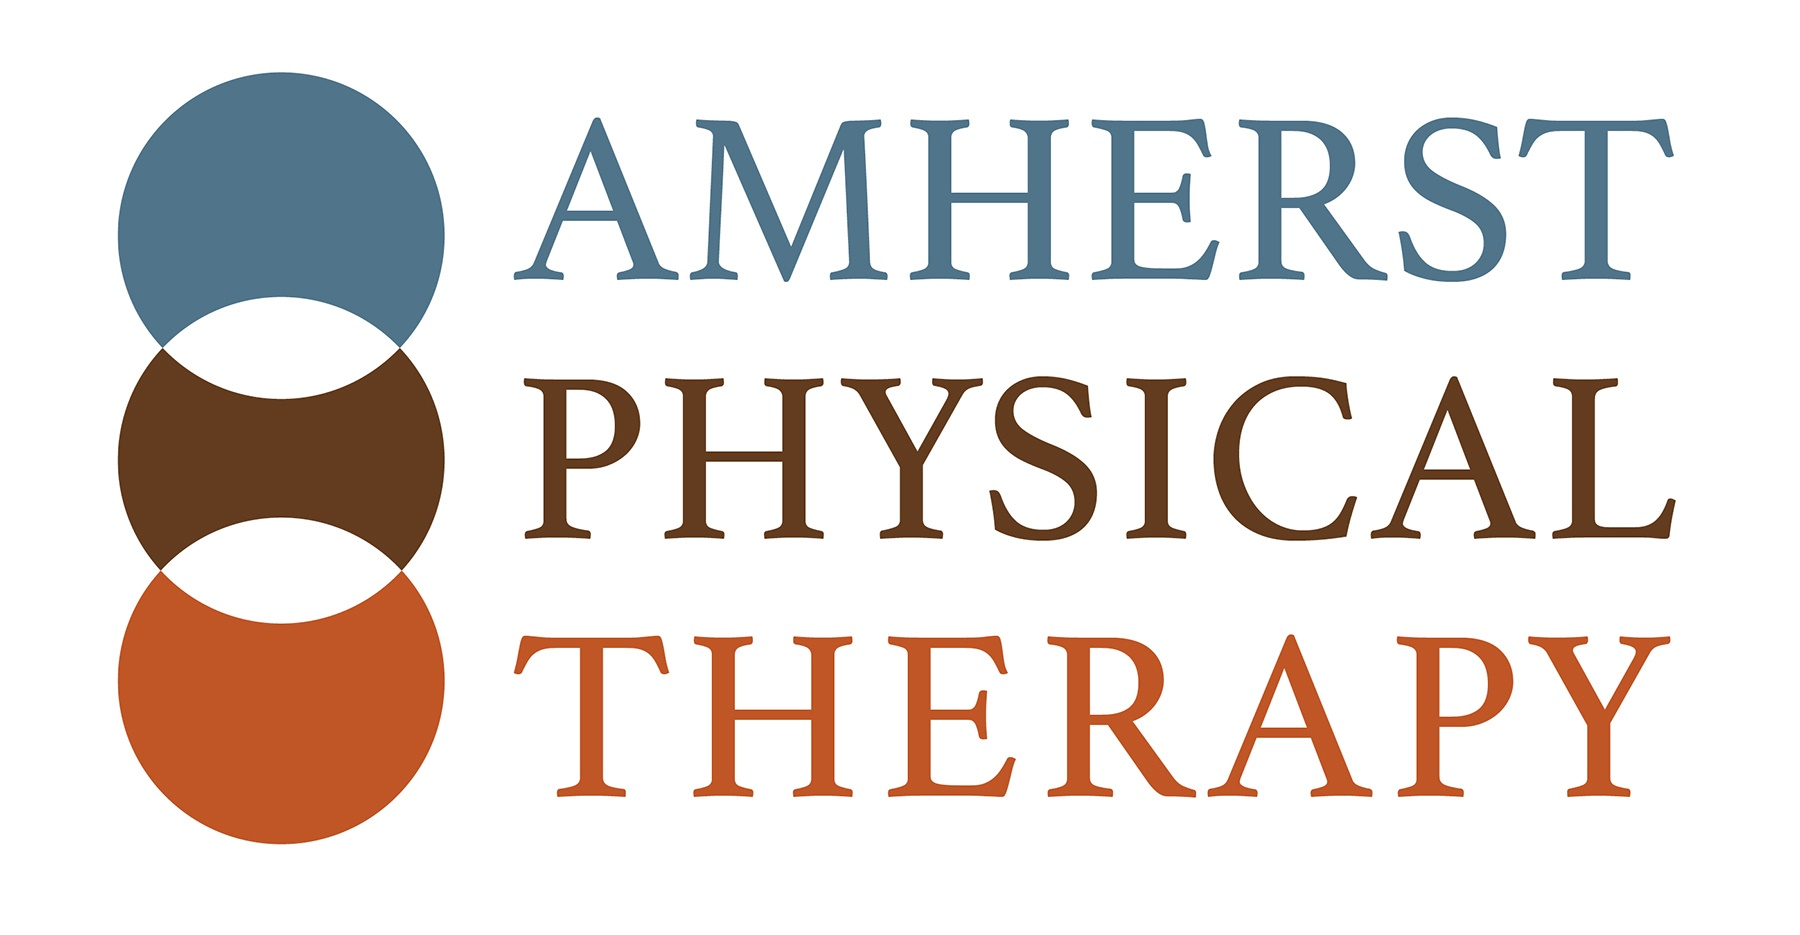 Association new physical therapy york - Amherst Physical Therapy Is A Member Of The American Physical Therapy Association Apta And The New York Physical Therapy Association Nypta